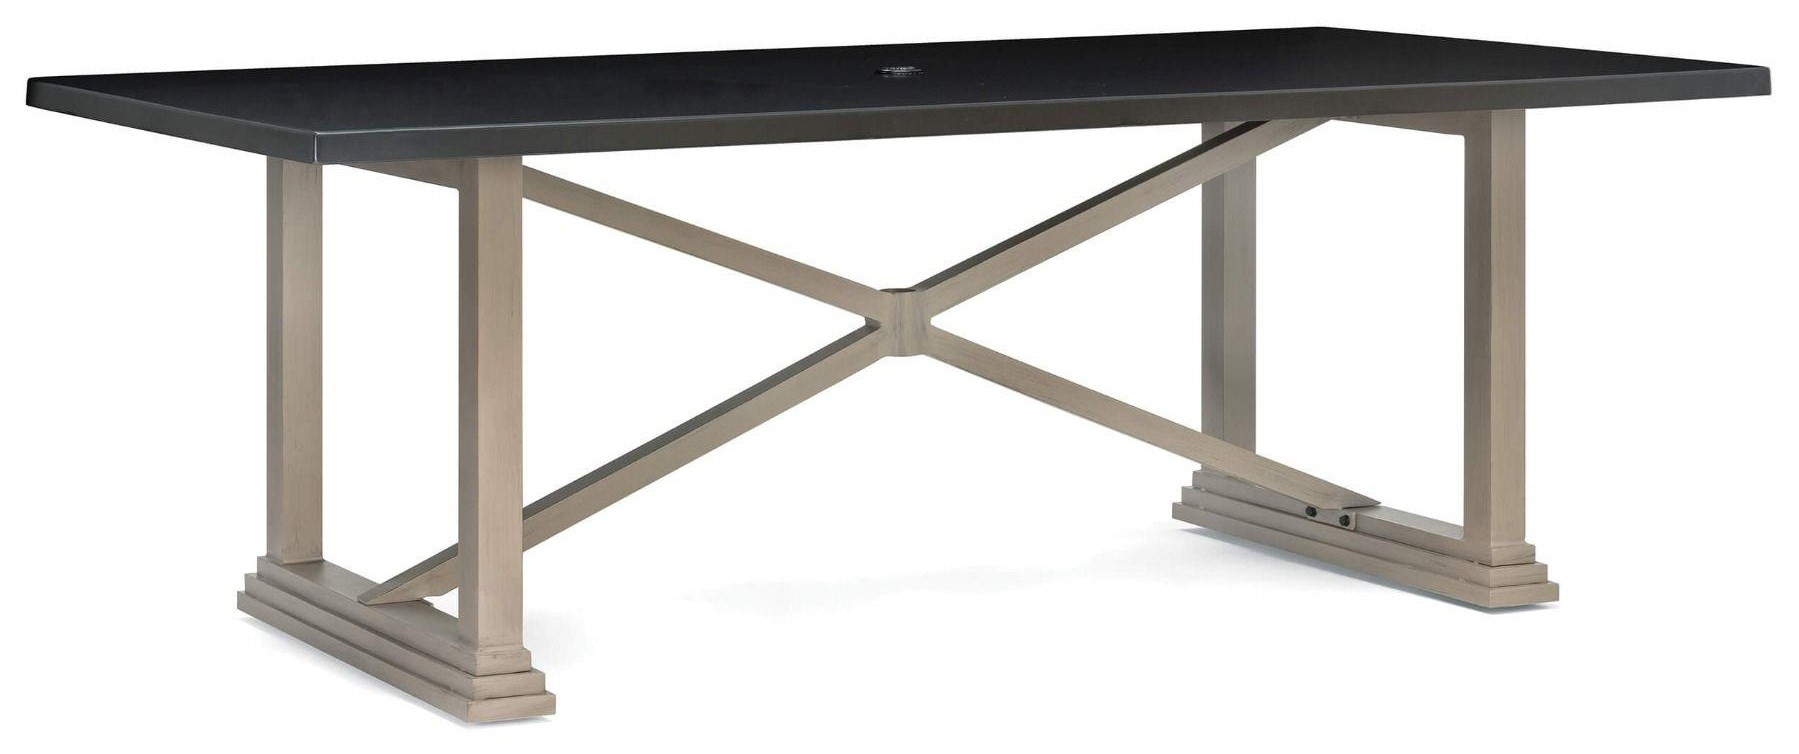 86 inch Table, 2 Arm, 2 Side, Dining Bench